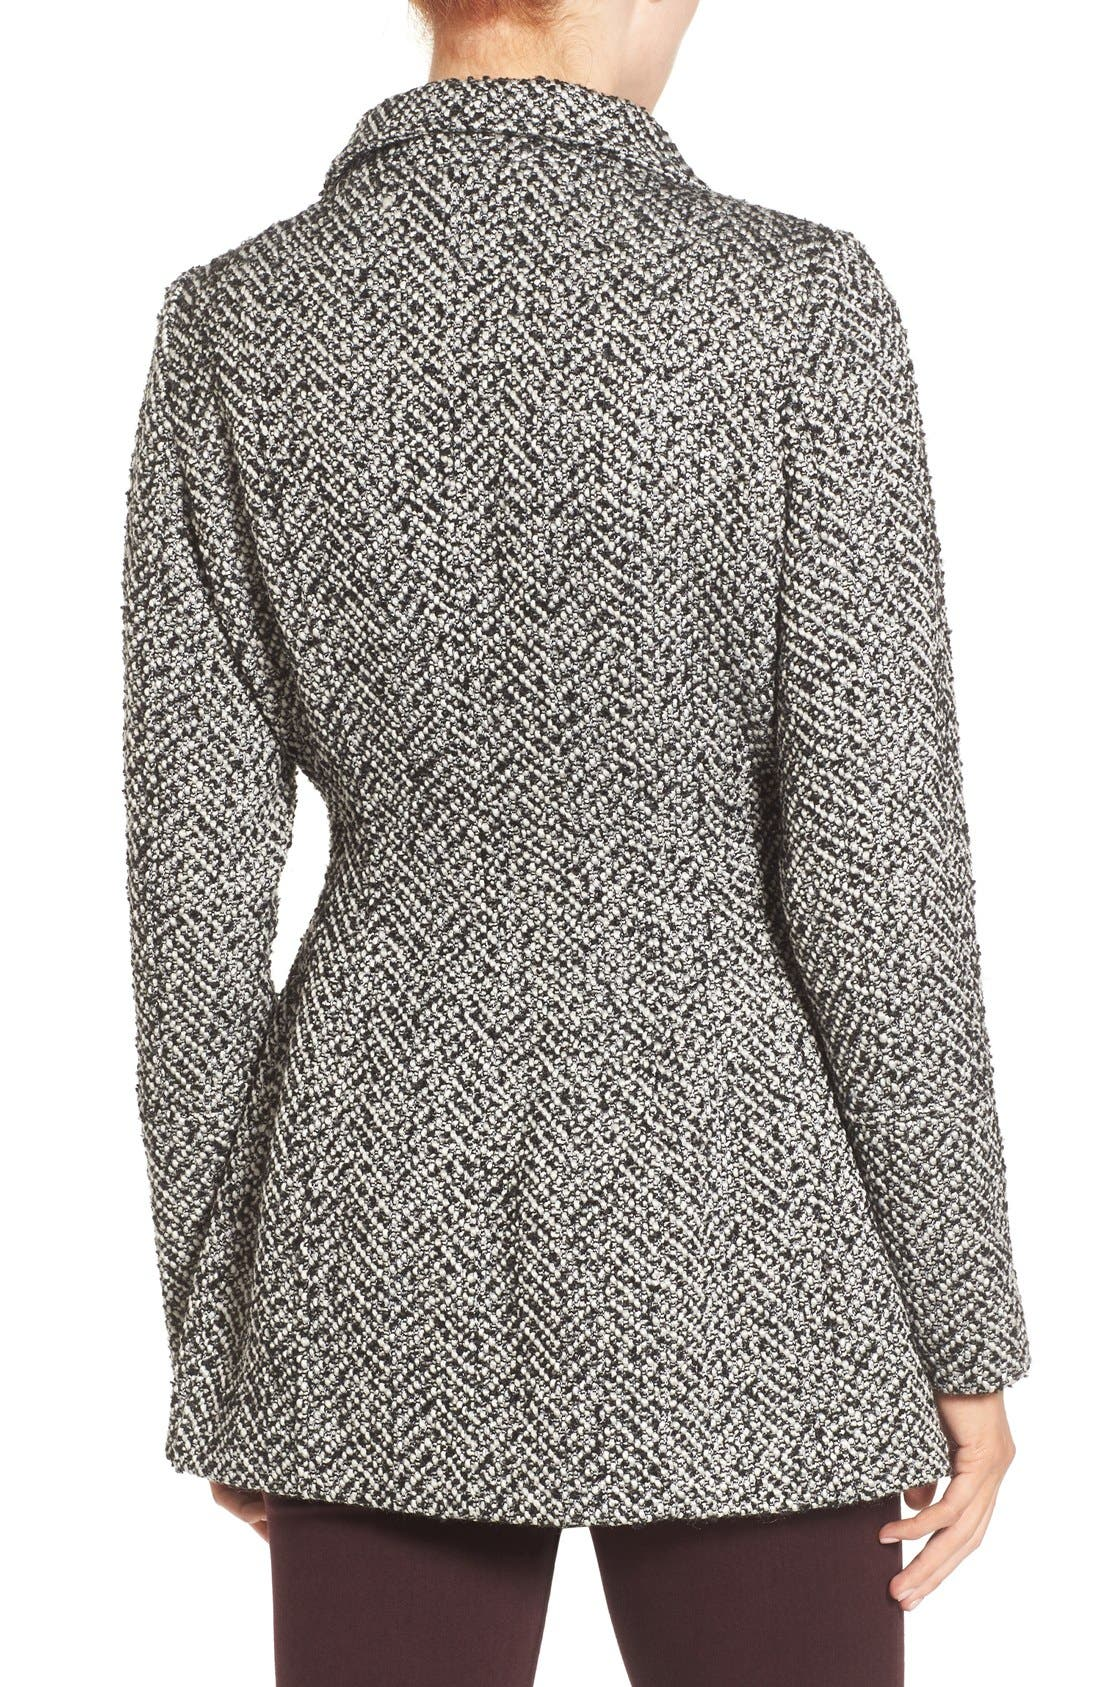 JESSICA SIMPSON,                             Belted Tweed Coat,                             Alternate thumbnail 2, color,                             003